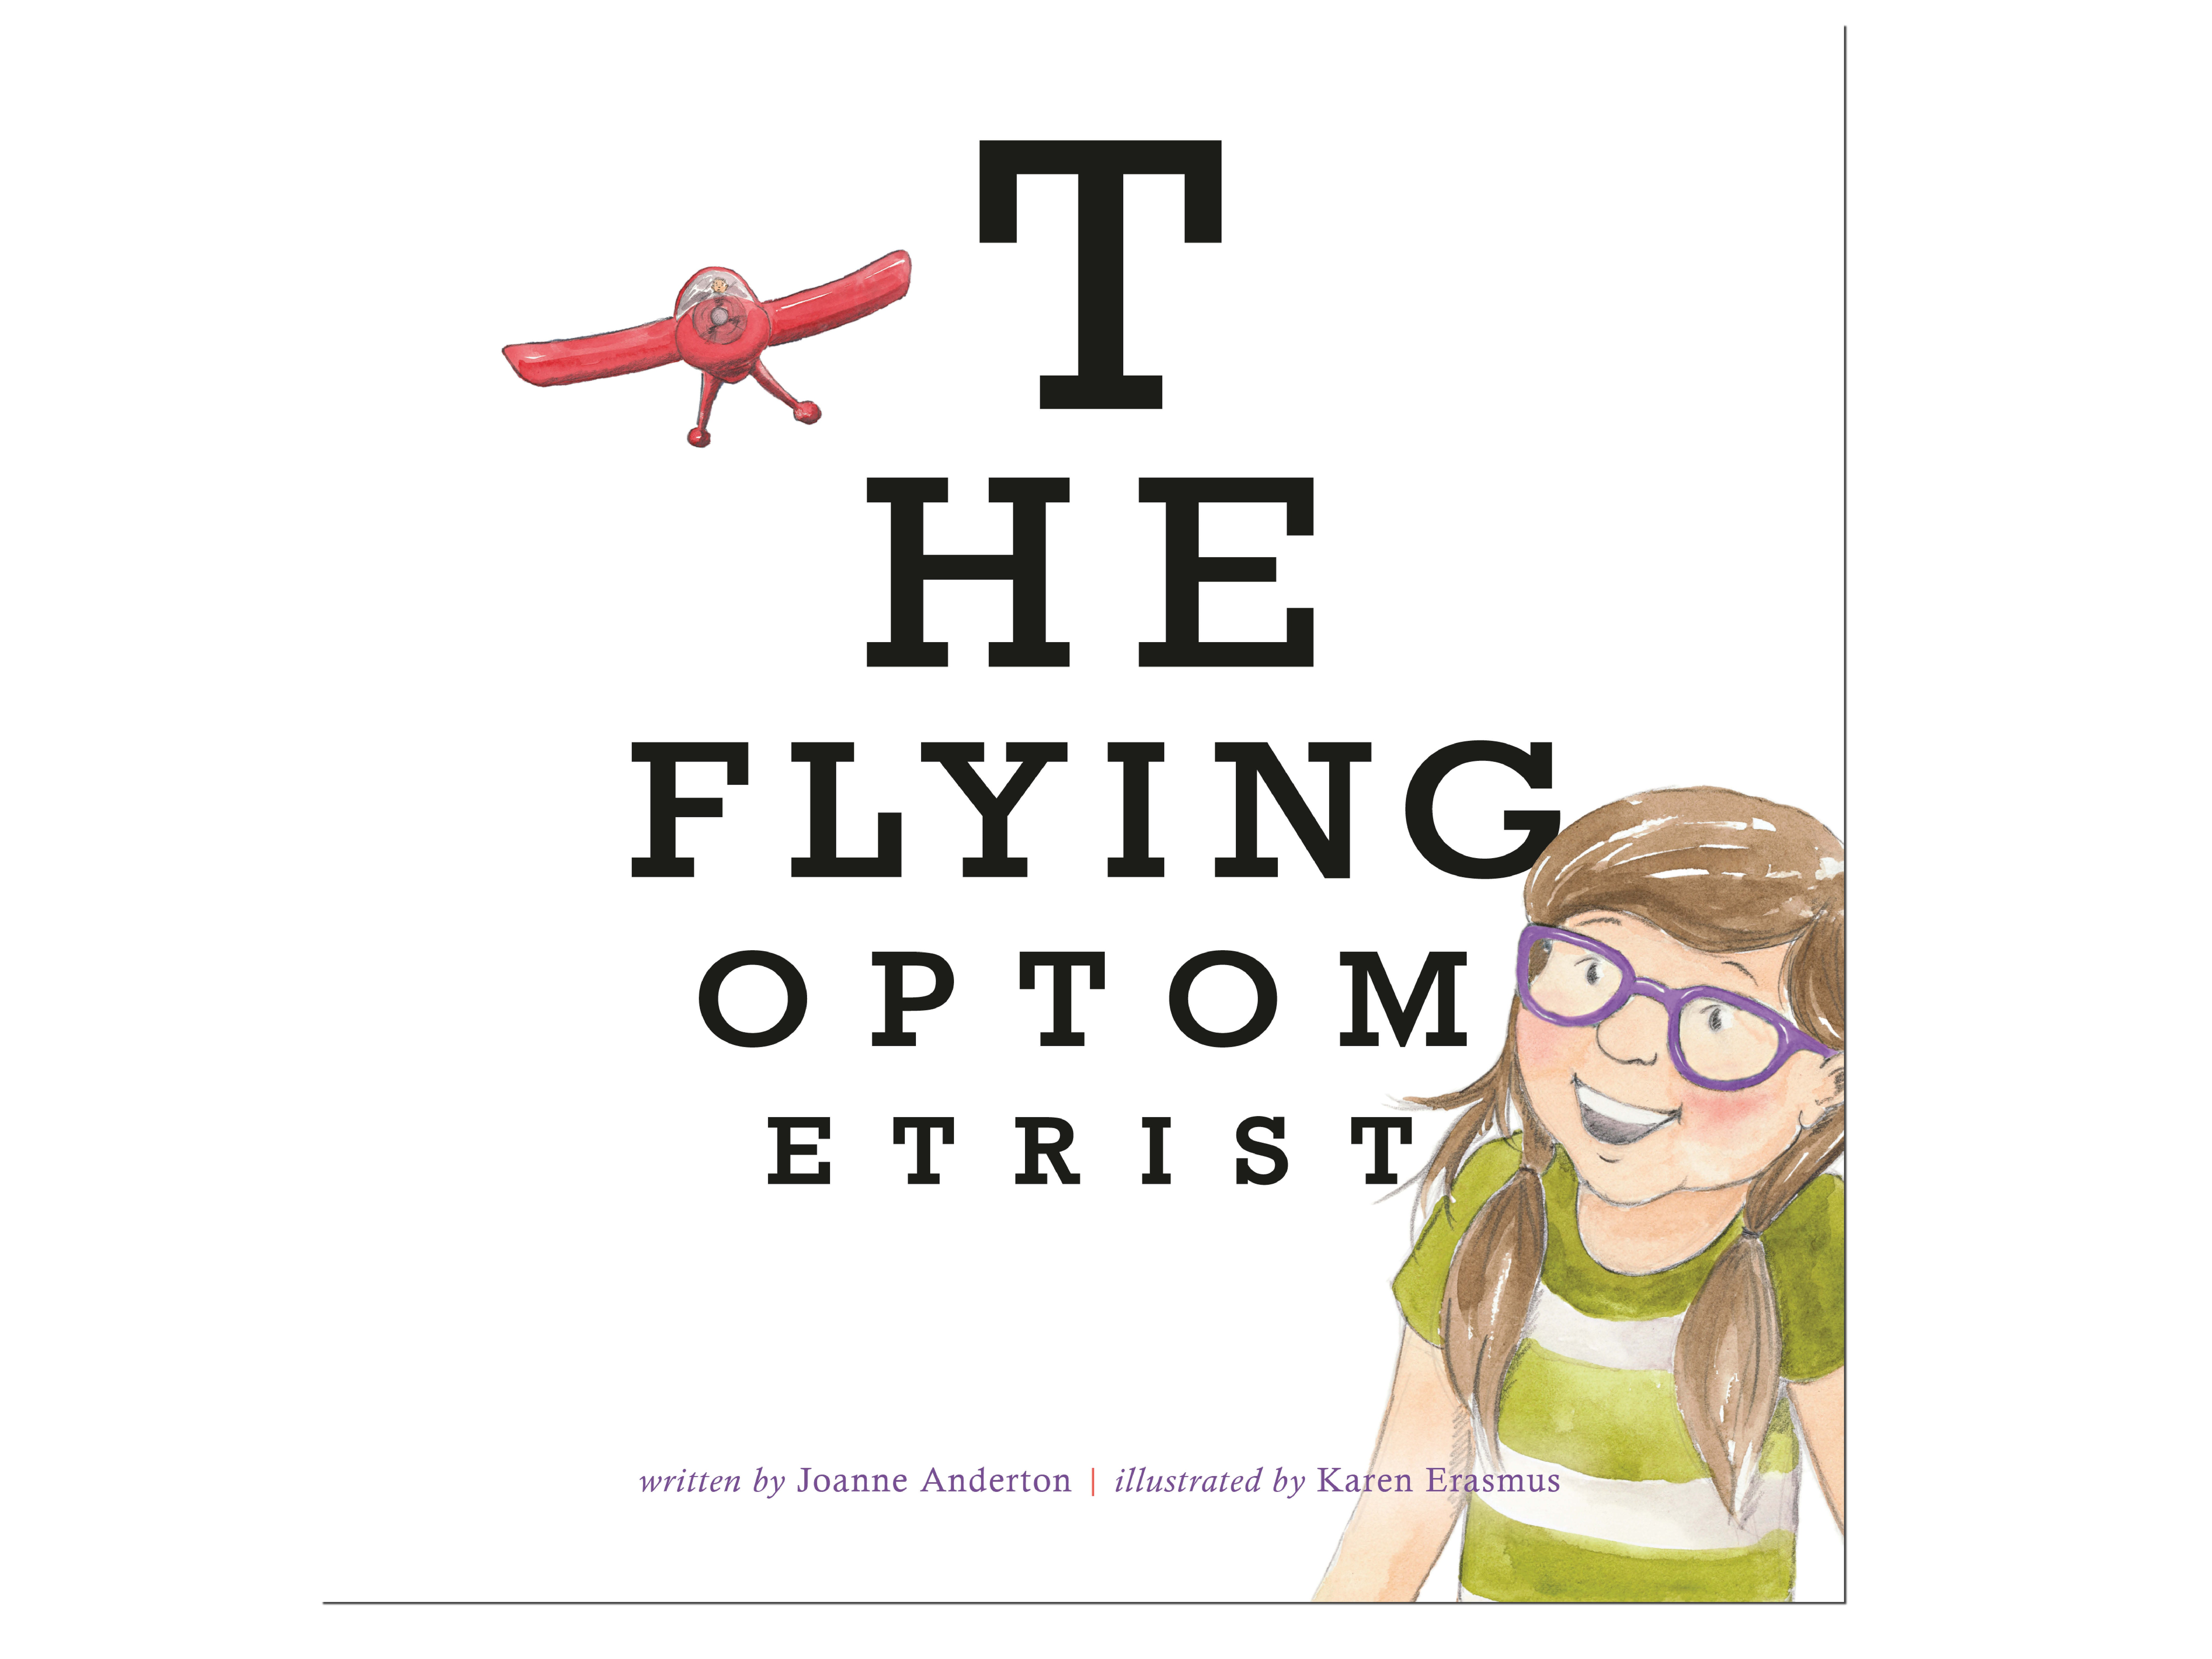 The Flying Optometrist book sweepstakes